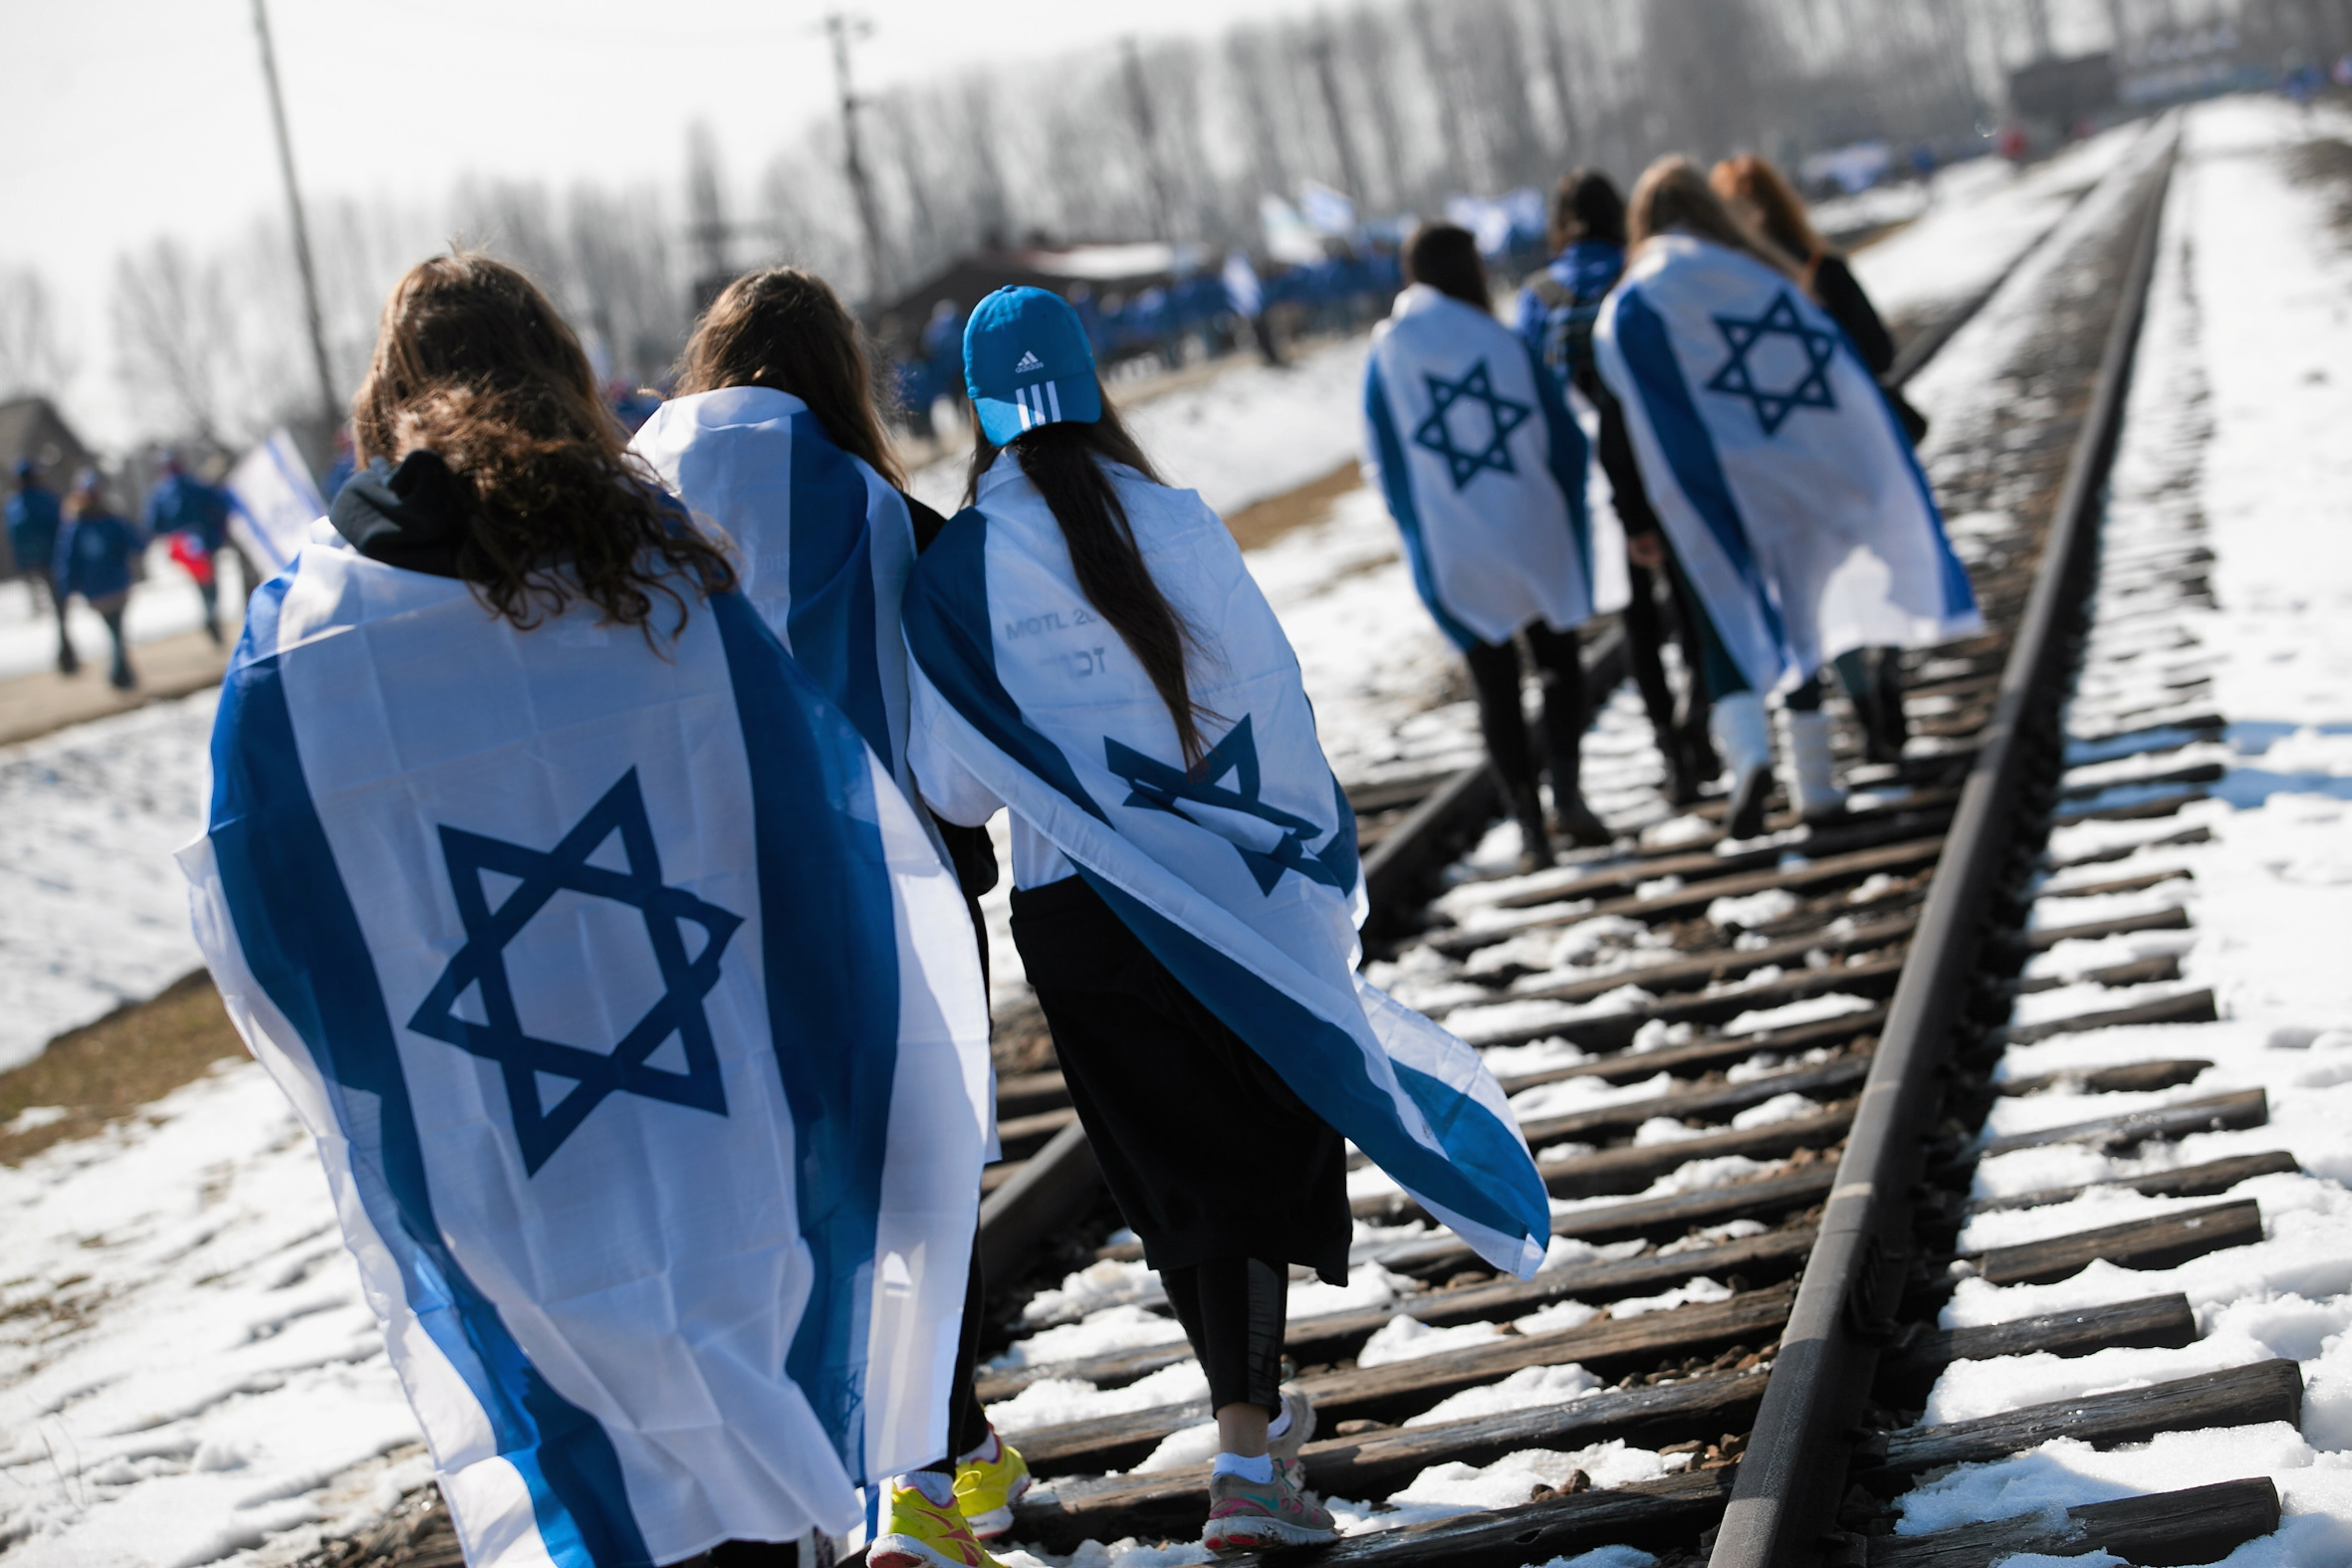 "People wear Israeli flags around their shoulders as they walk on the railroad tracks inside the former Nazi death camp of Birkenau (Auschwitz II) in Oswiecim-Brzezinka, southern Poland April 8, 2013. Thousands of mainly Jewish people participated in the 22nd annual ""March of the Living"", a Holocaust commemoration. REUTERS/Jakub Ociepa/Agencja Gazeta"